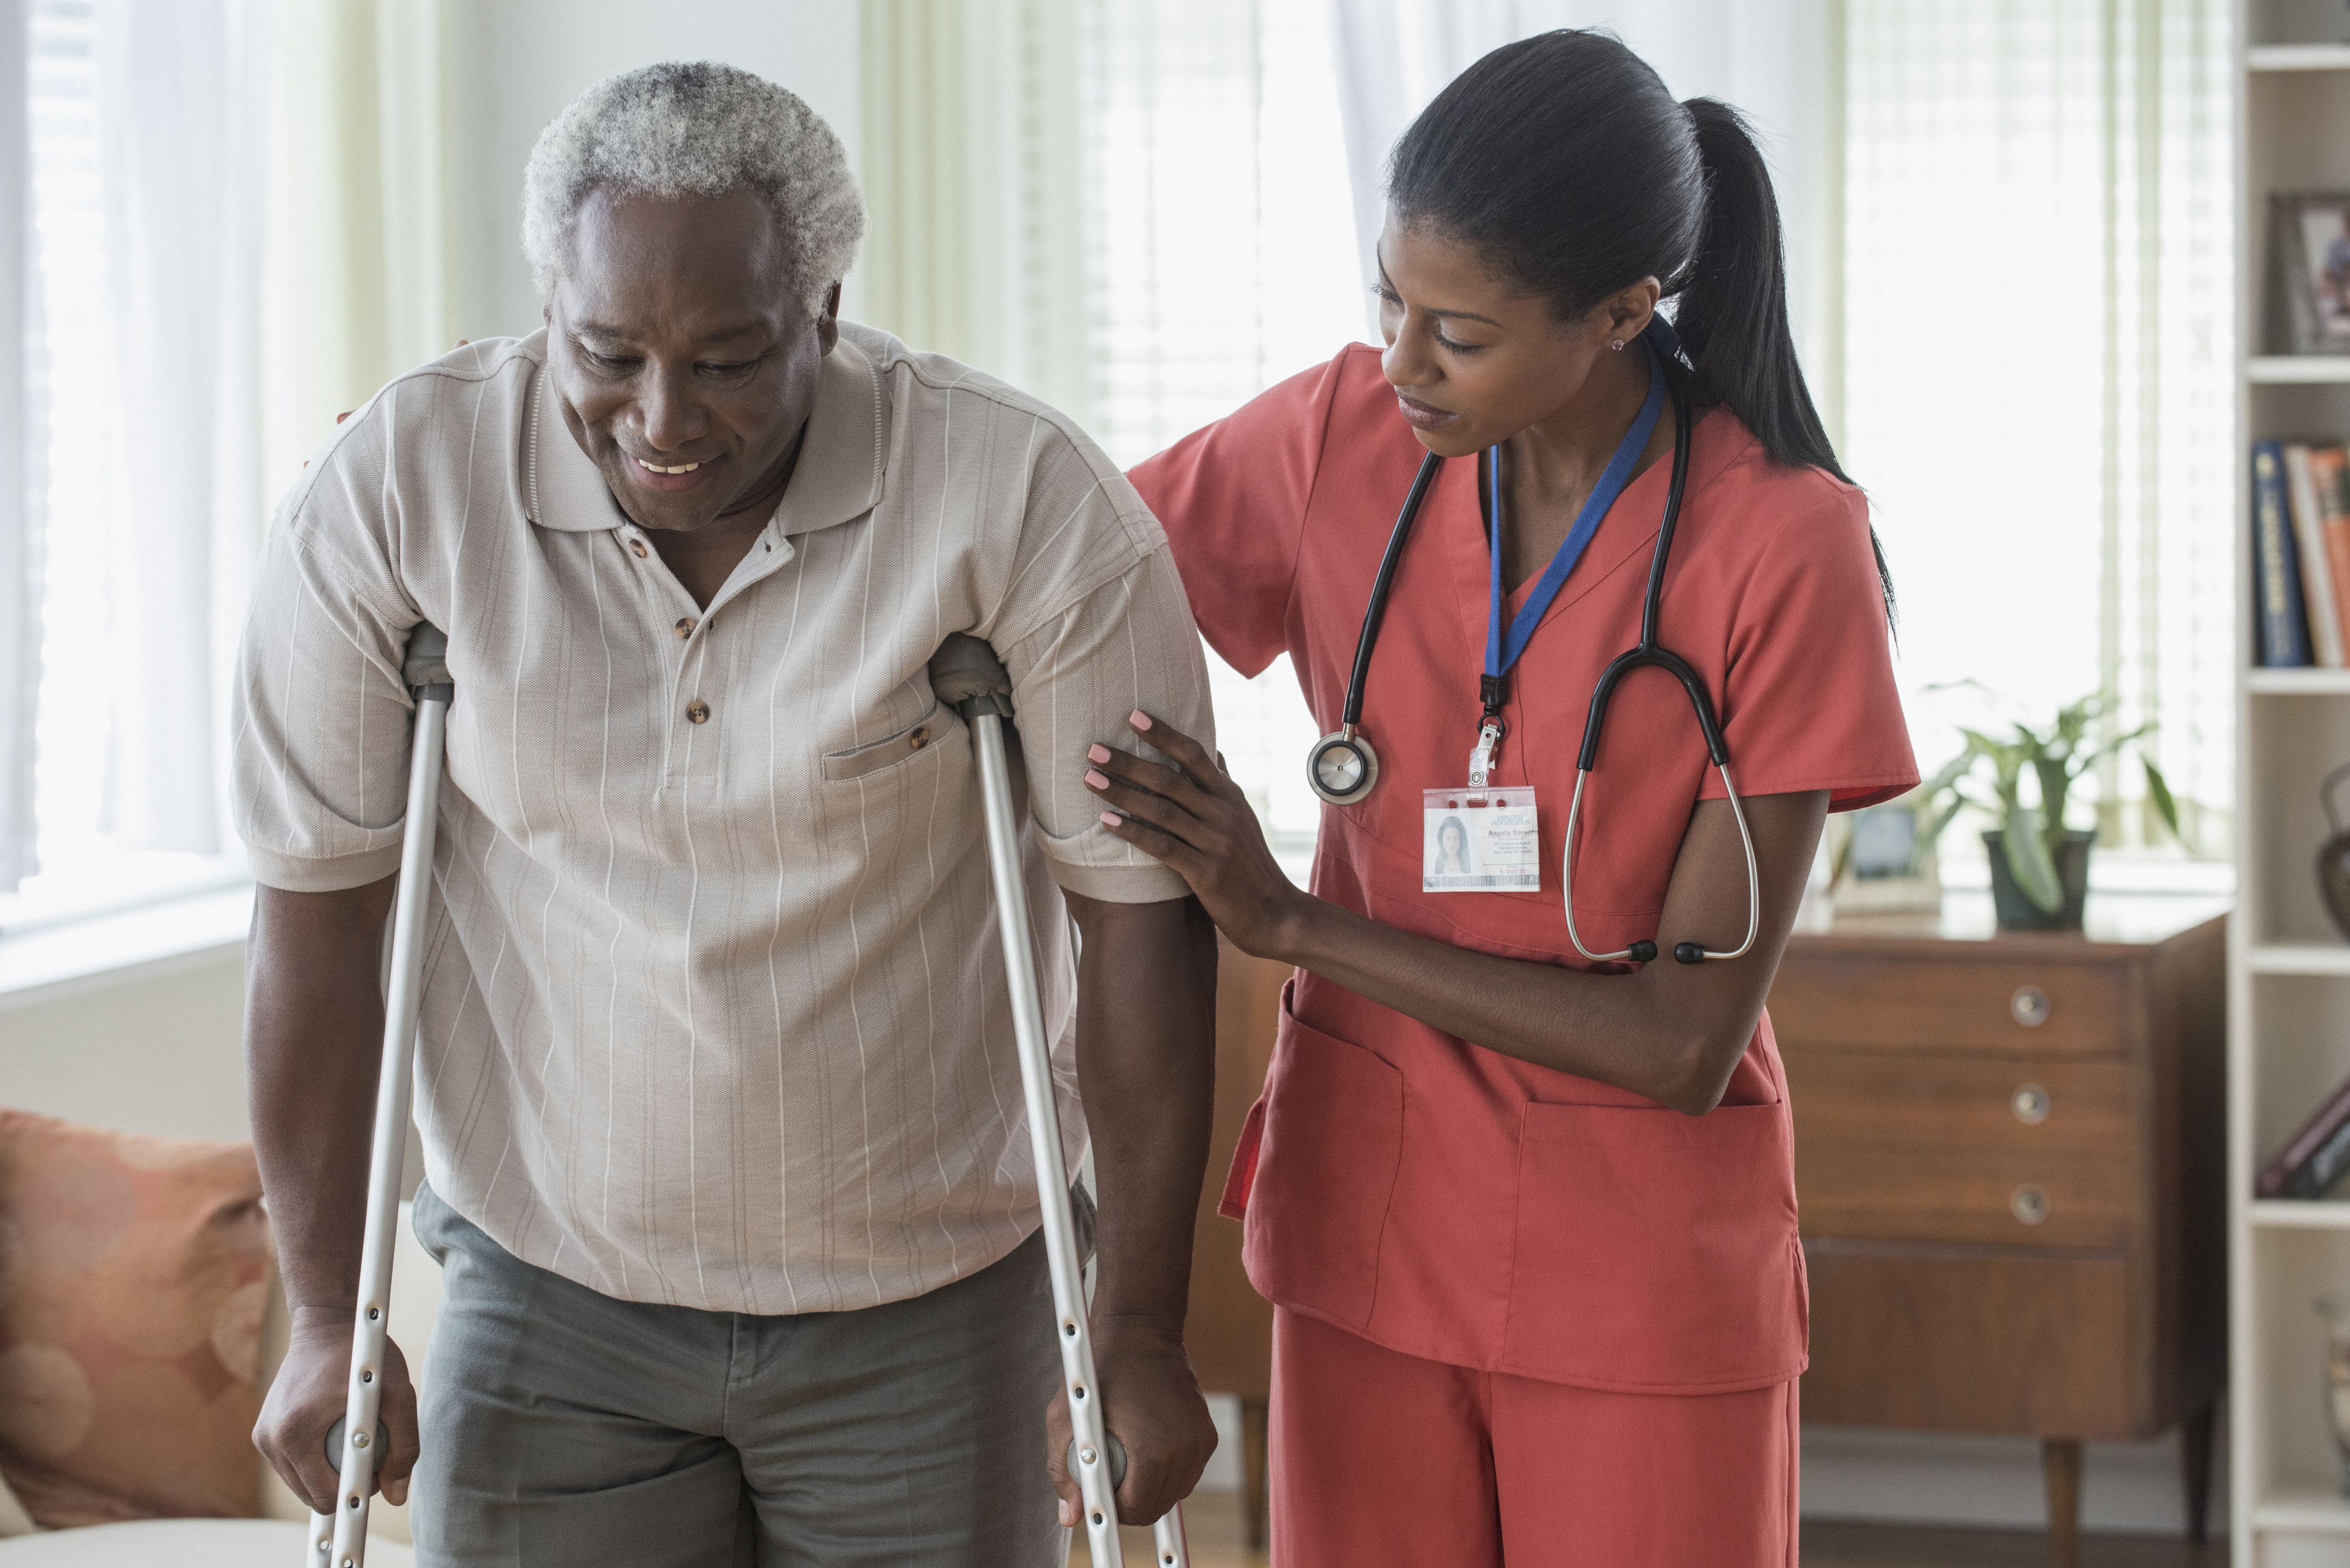 Home health aide or home care aide with a patient in his home